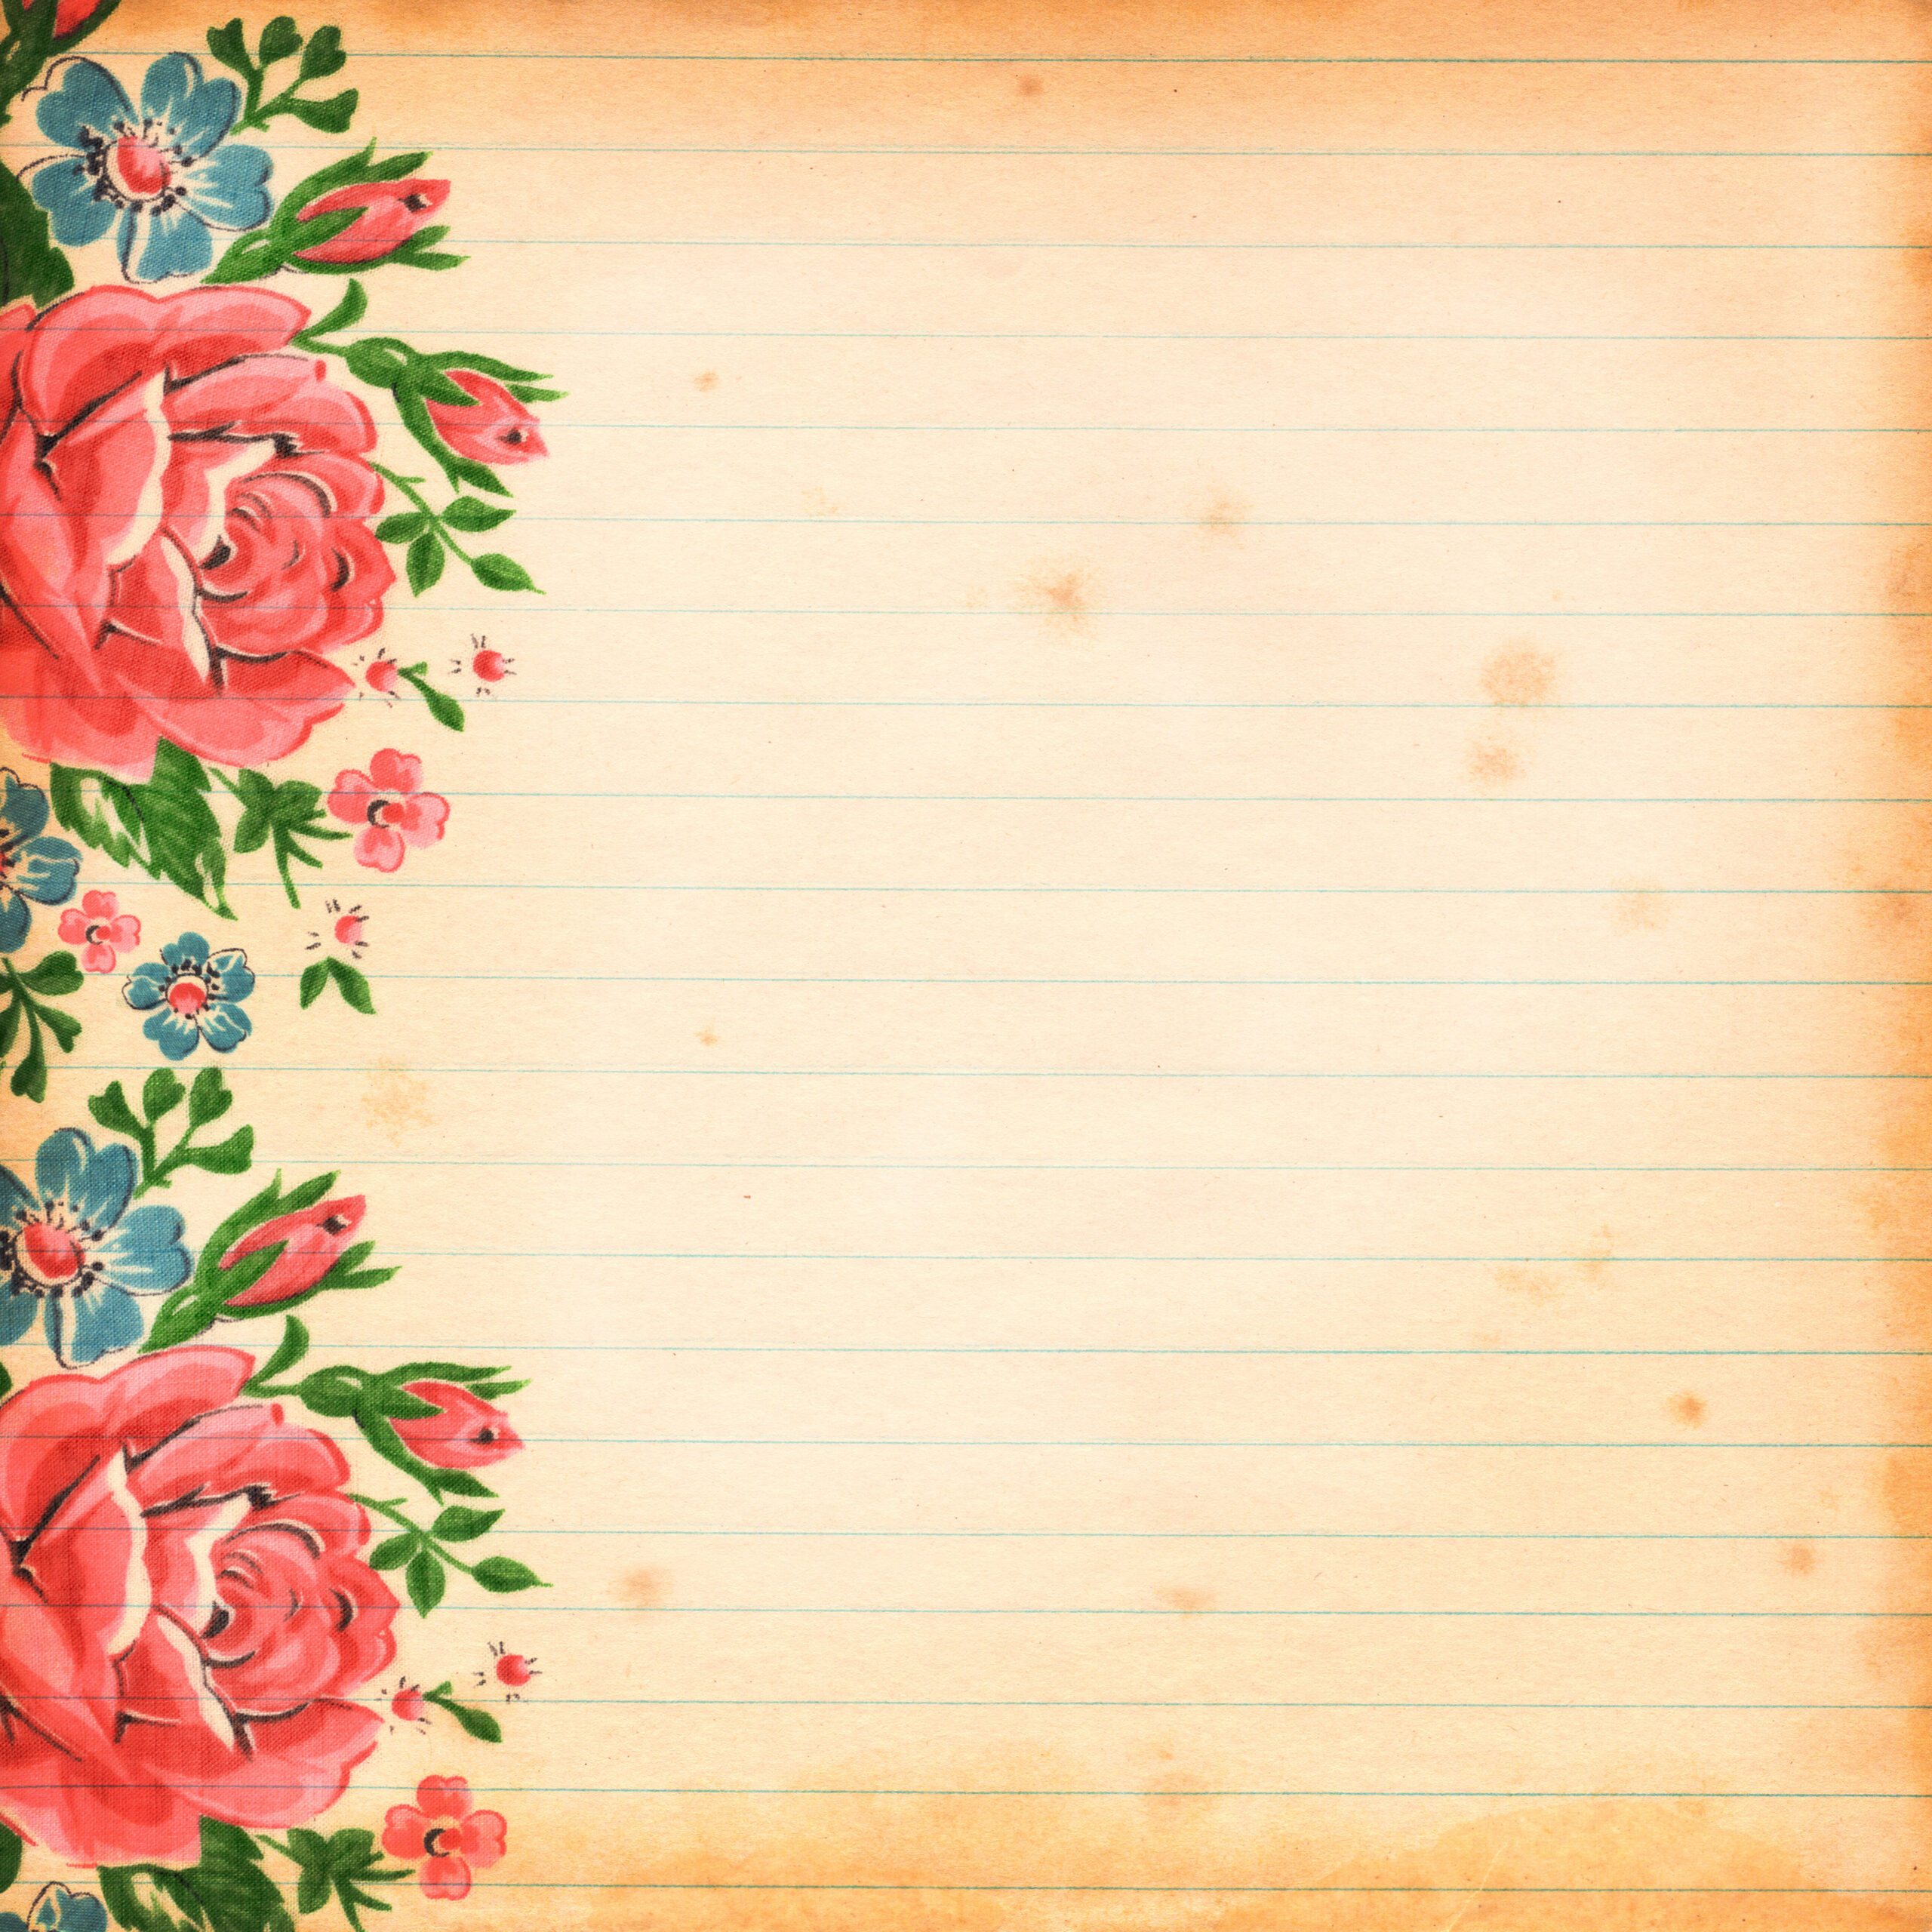 Free digital scrapbook paper commercial use ok free pretty things free vintage floral digital scrapbooking paper by fptfy 5 mightylinksfo